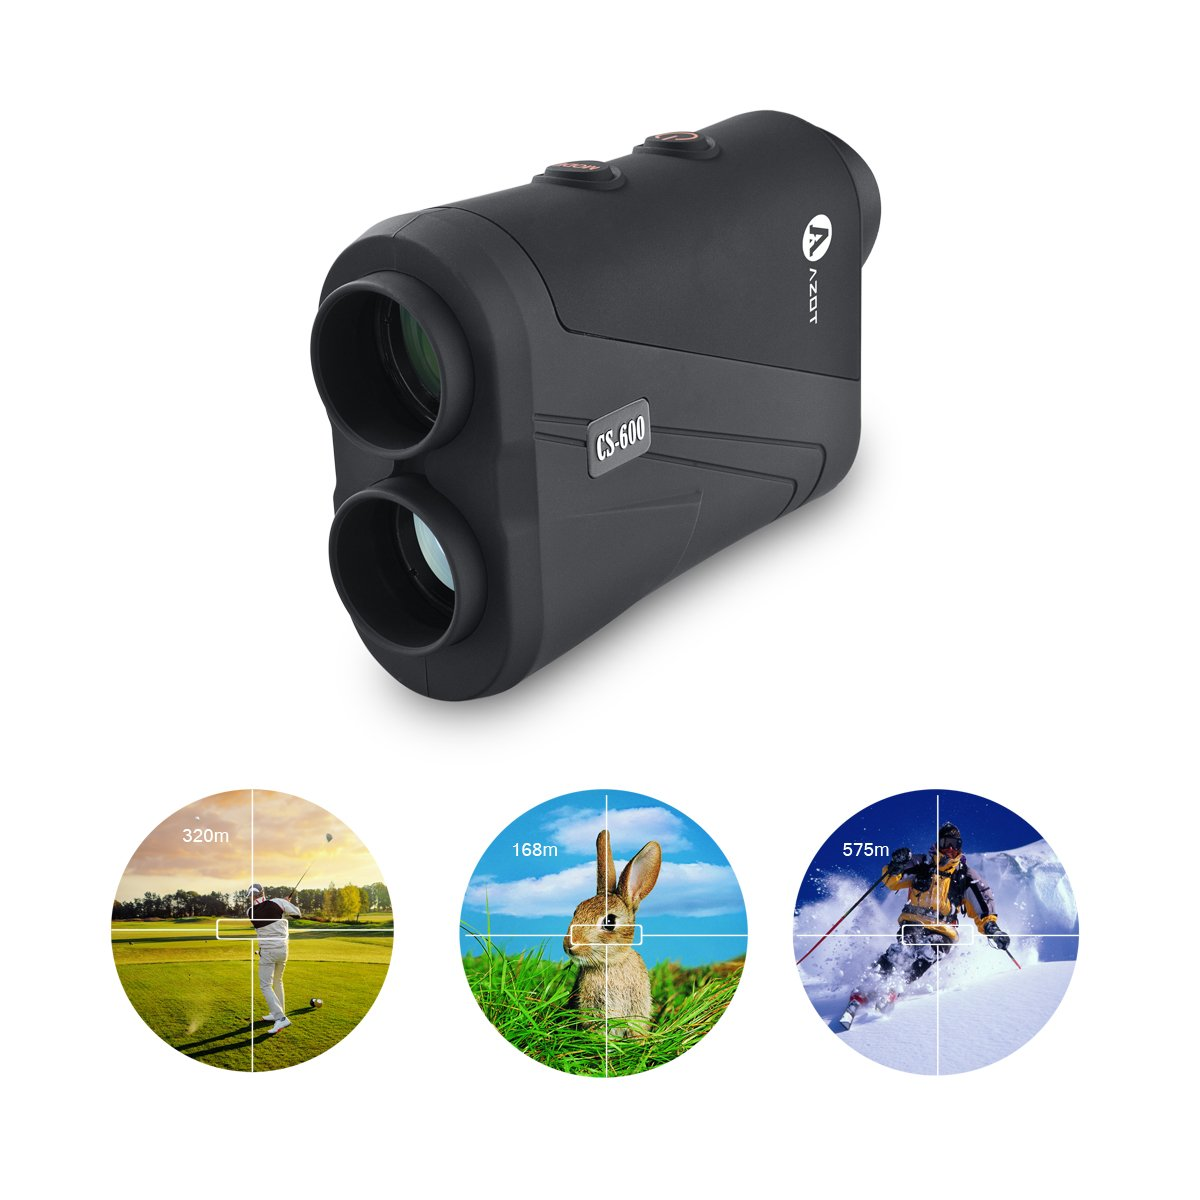 AZOT CS-600 Golf rangefinder Laser Range Finder with waterproof function Measure ranging and speed Free Battery by AZOT (Image #7)